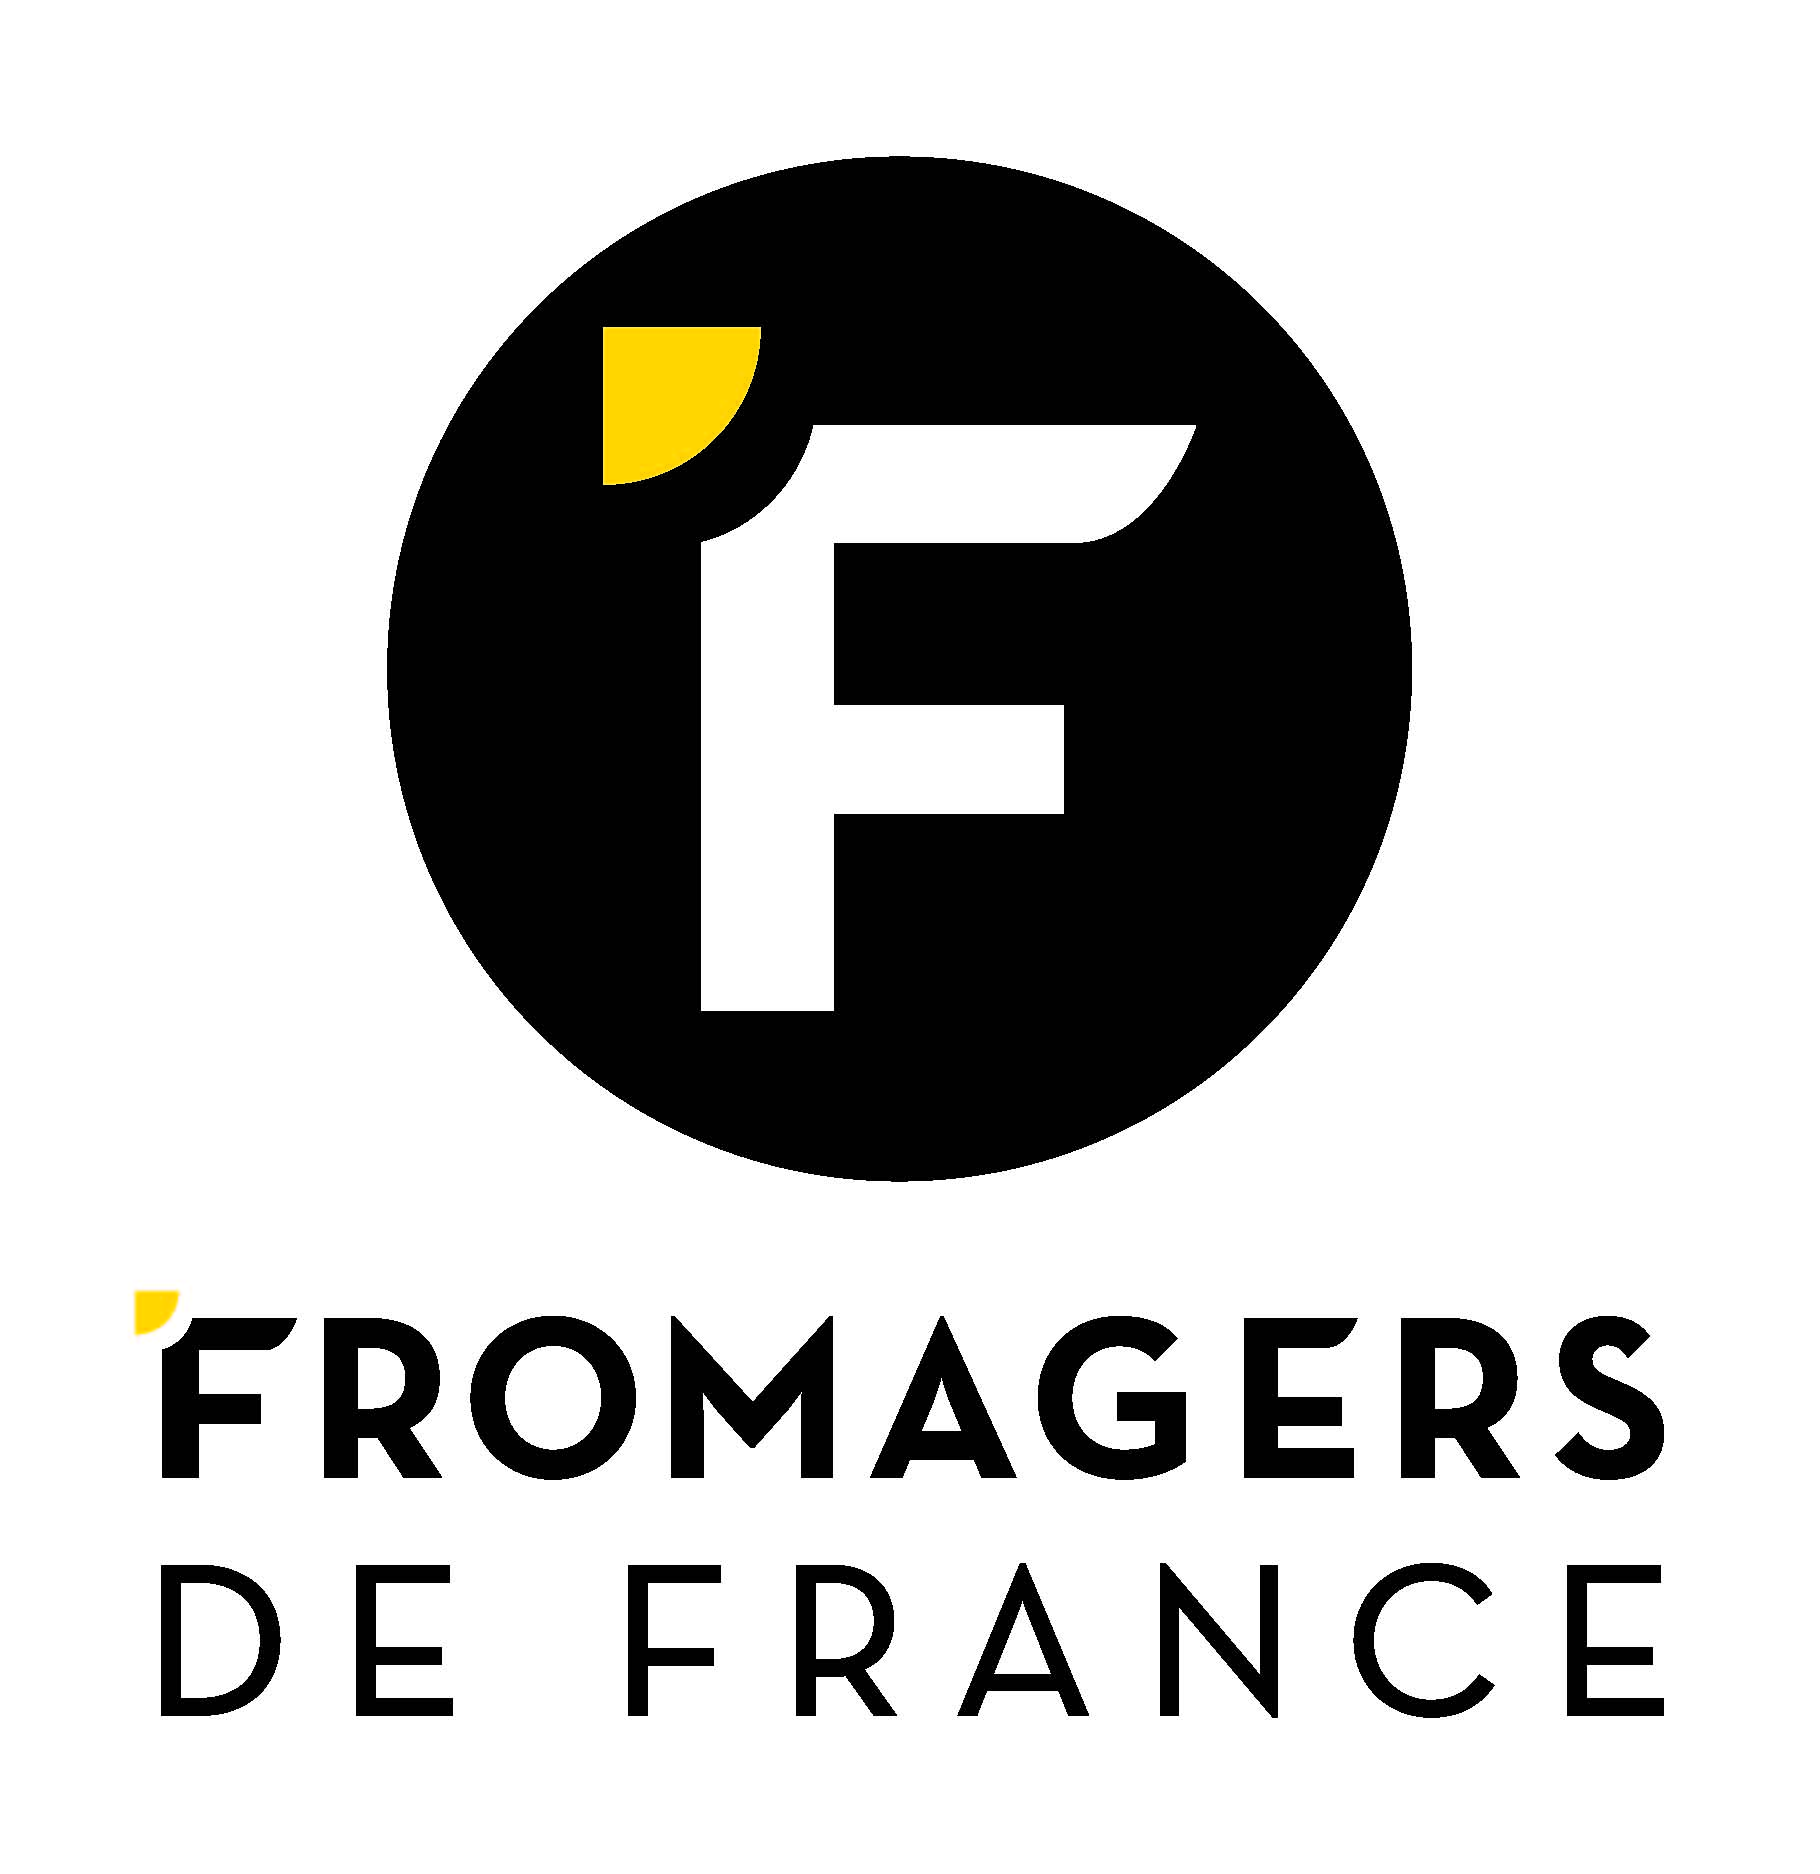 Fromagers de France